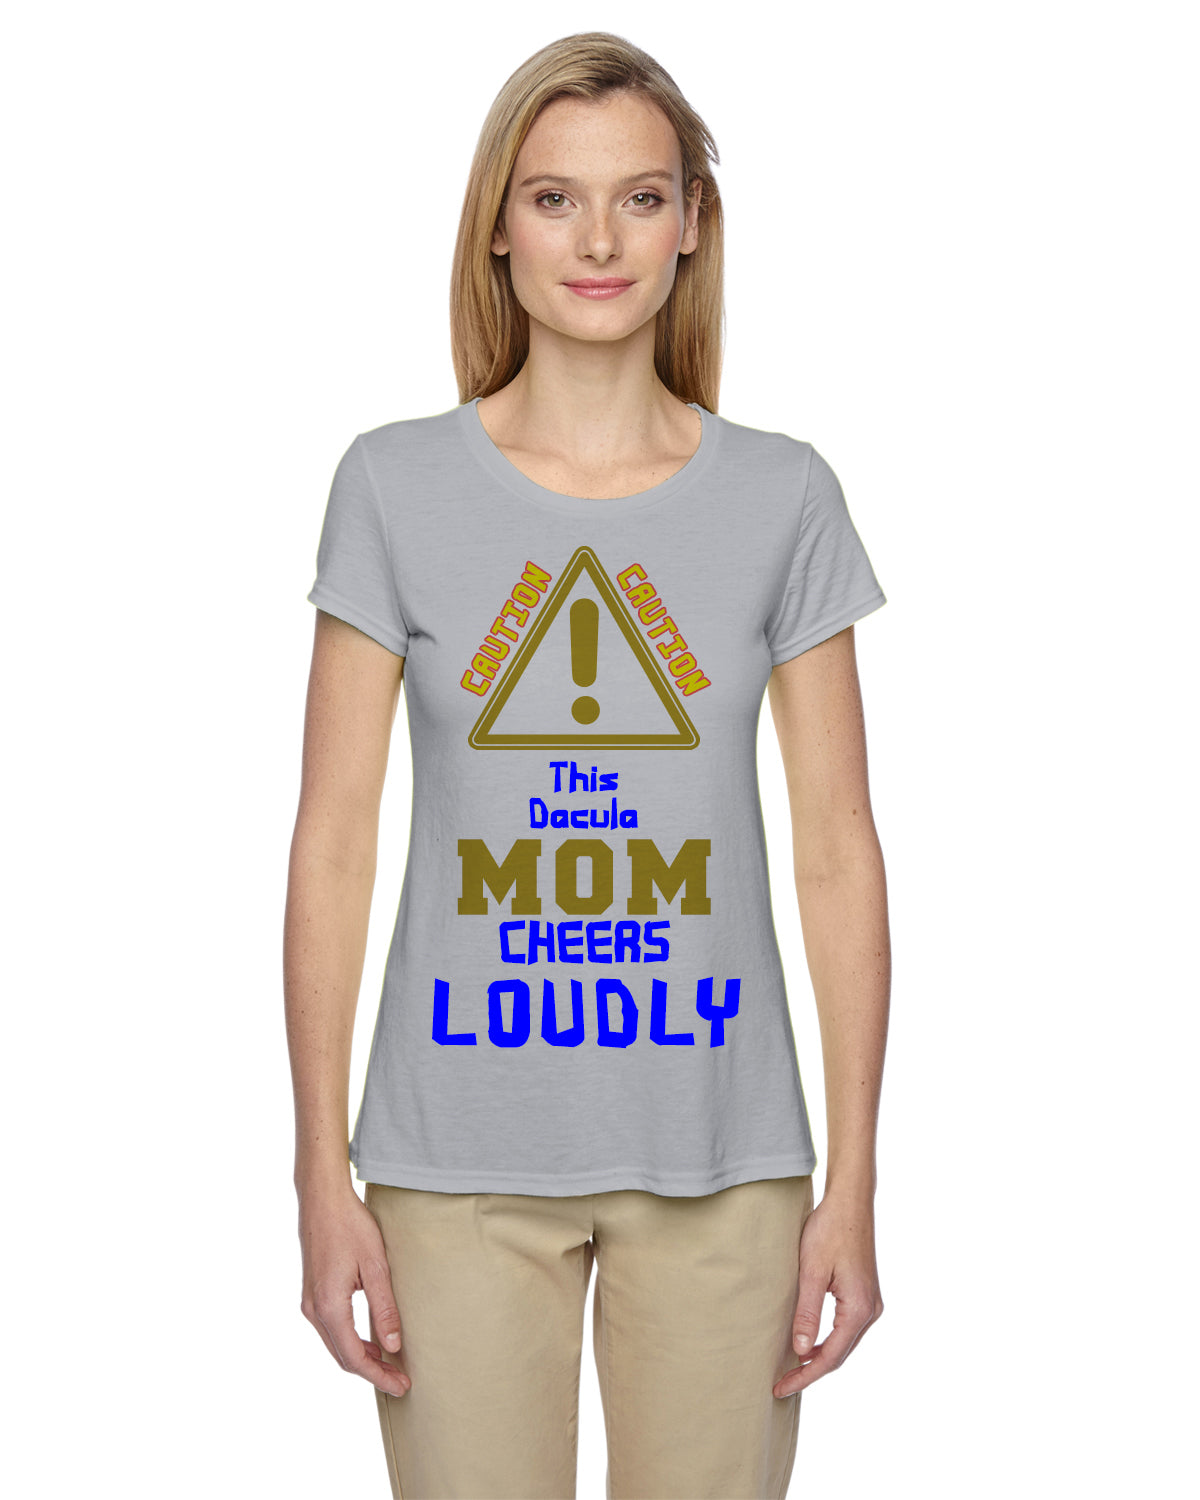 Dacula Loud Mom Shirts - Peachy Brass